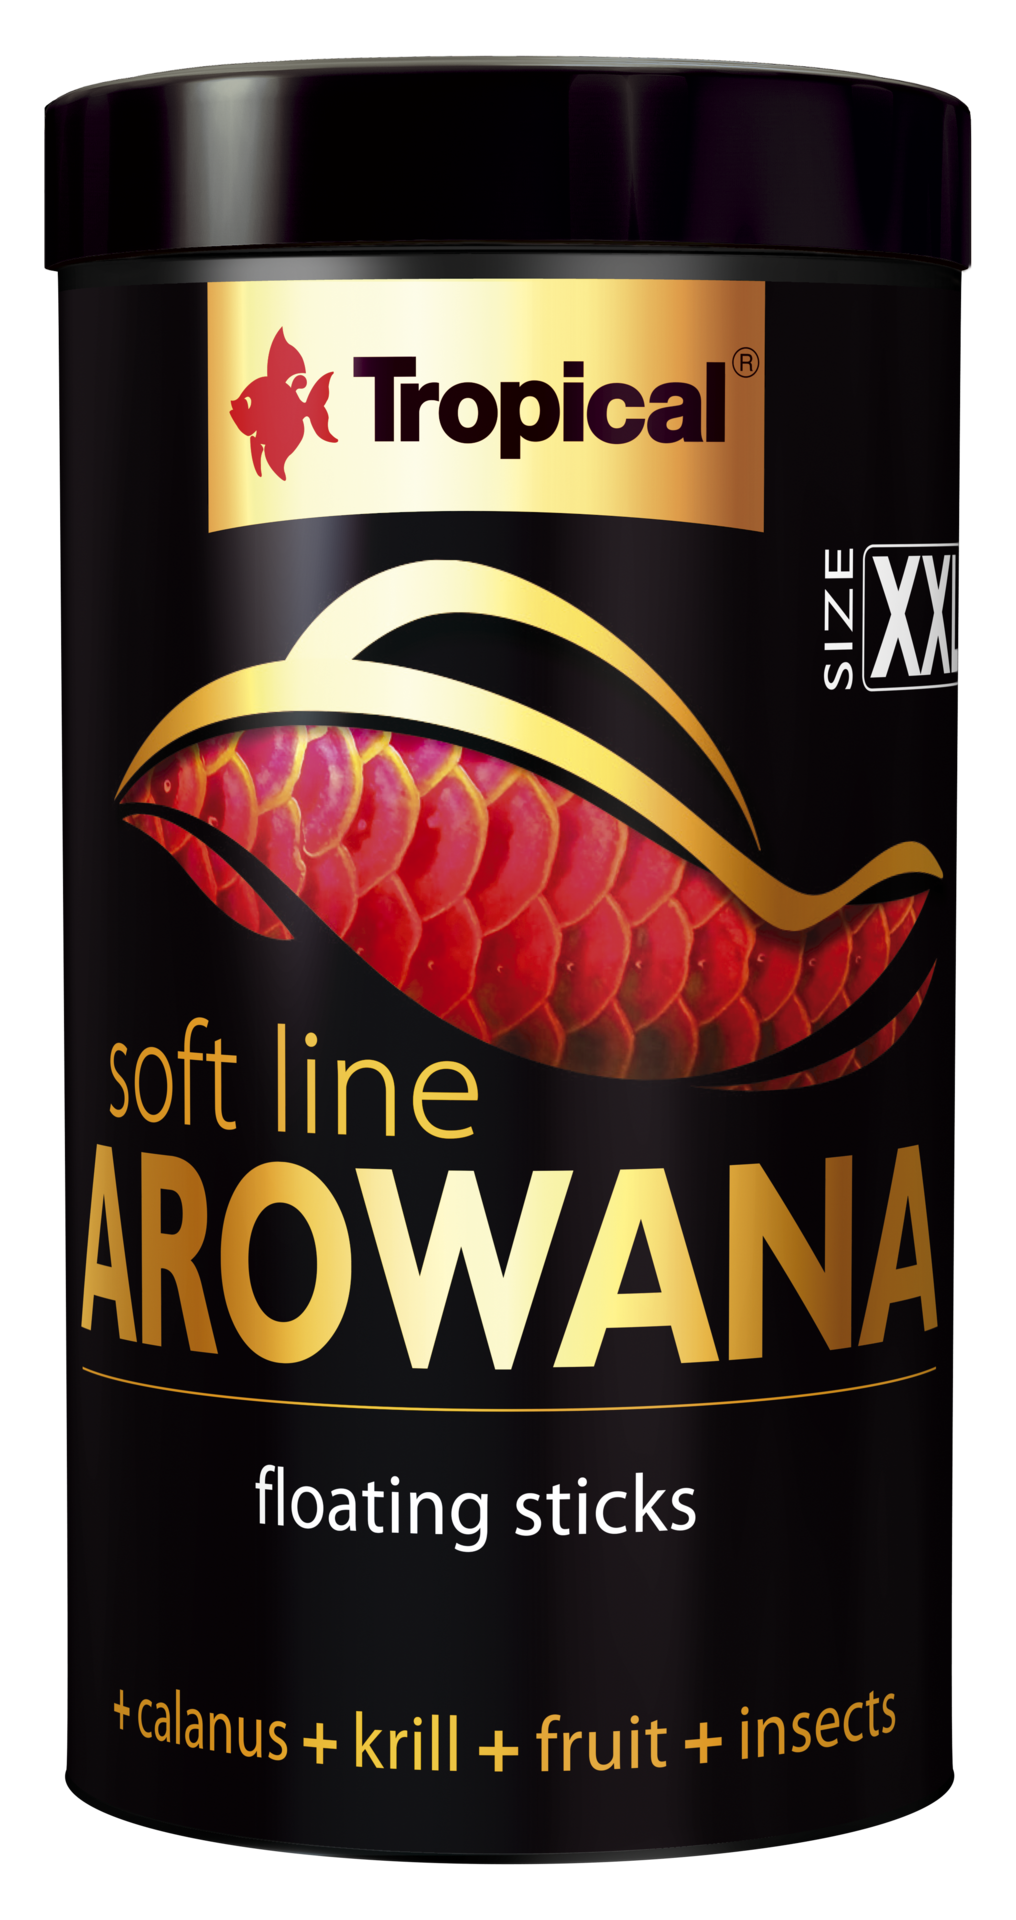 TROPICAL Soft Line Arowana XXL 1000 ml nourriture Premium en sticks pour poissons Arowana de plus de 20 cm